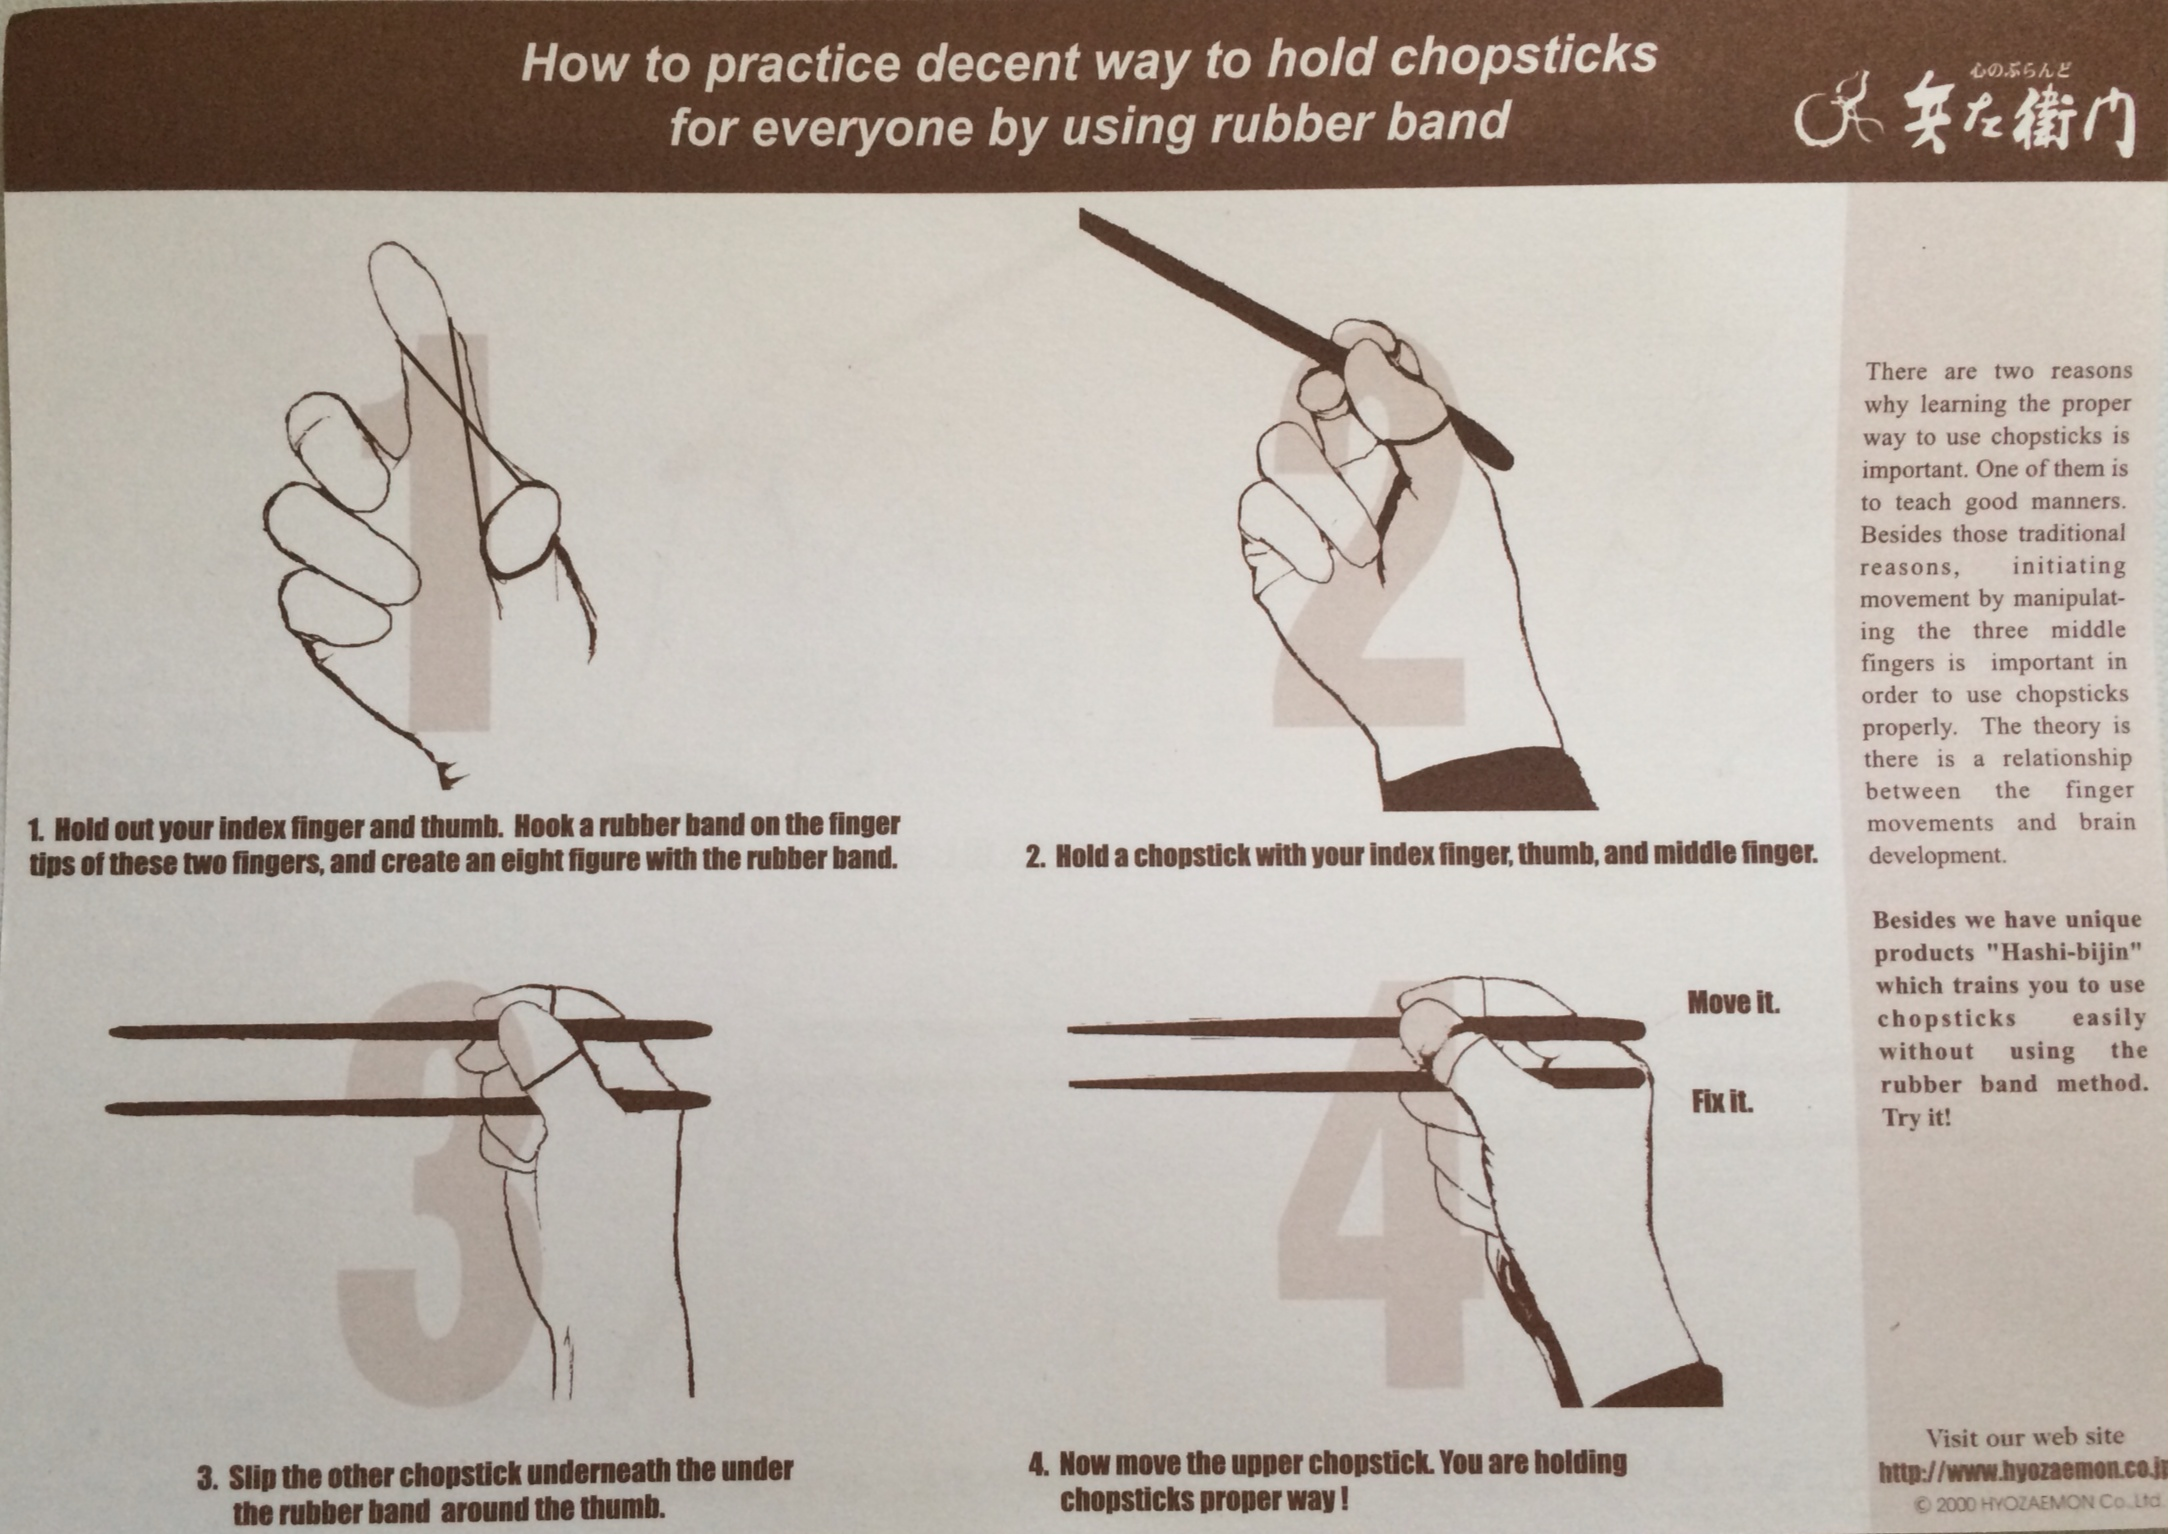 How to practice the proper way to use chopsticks